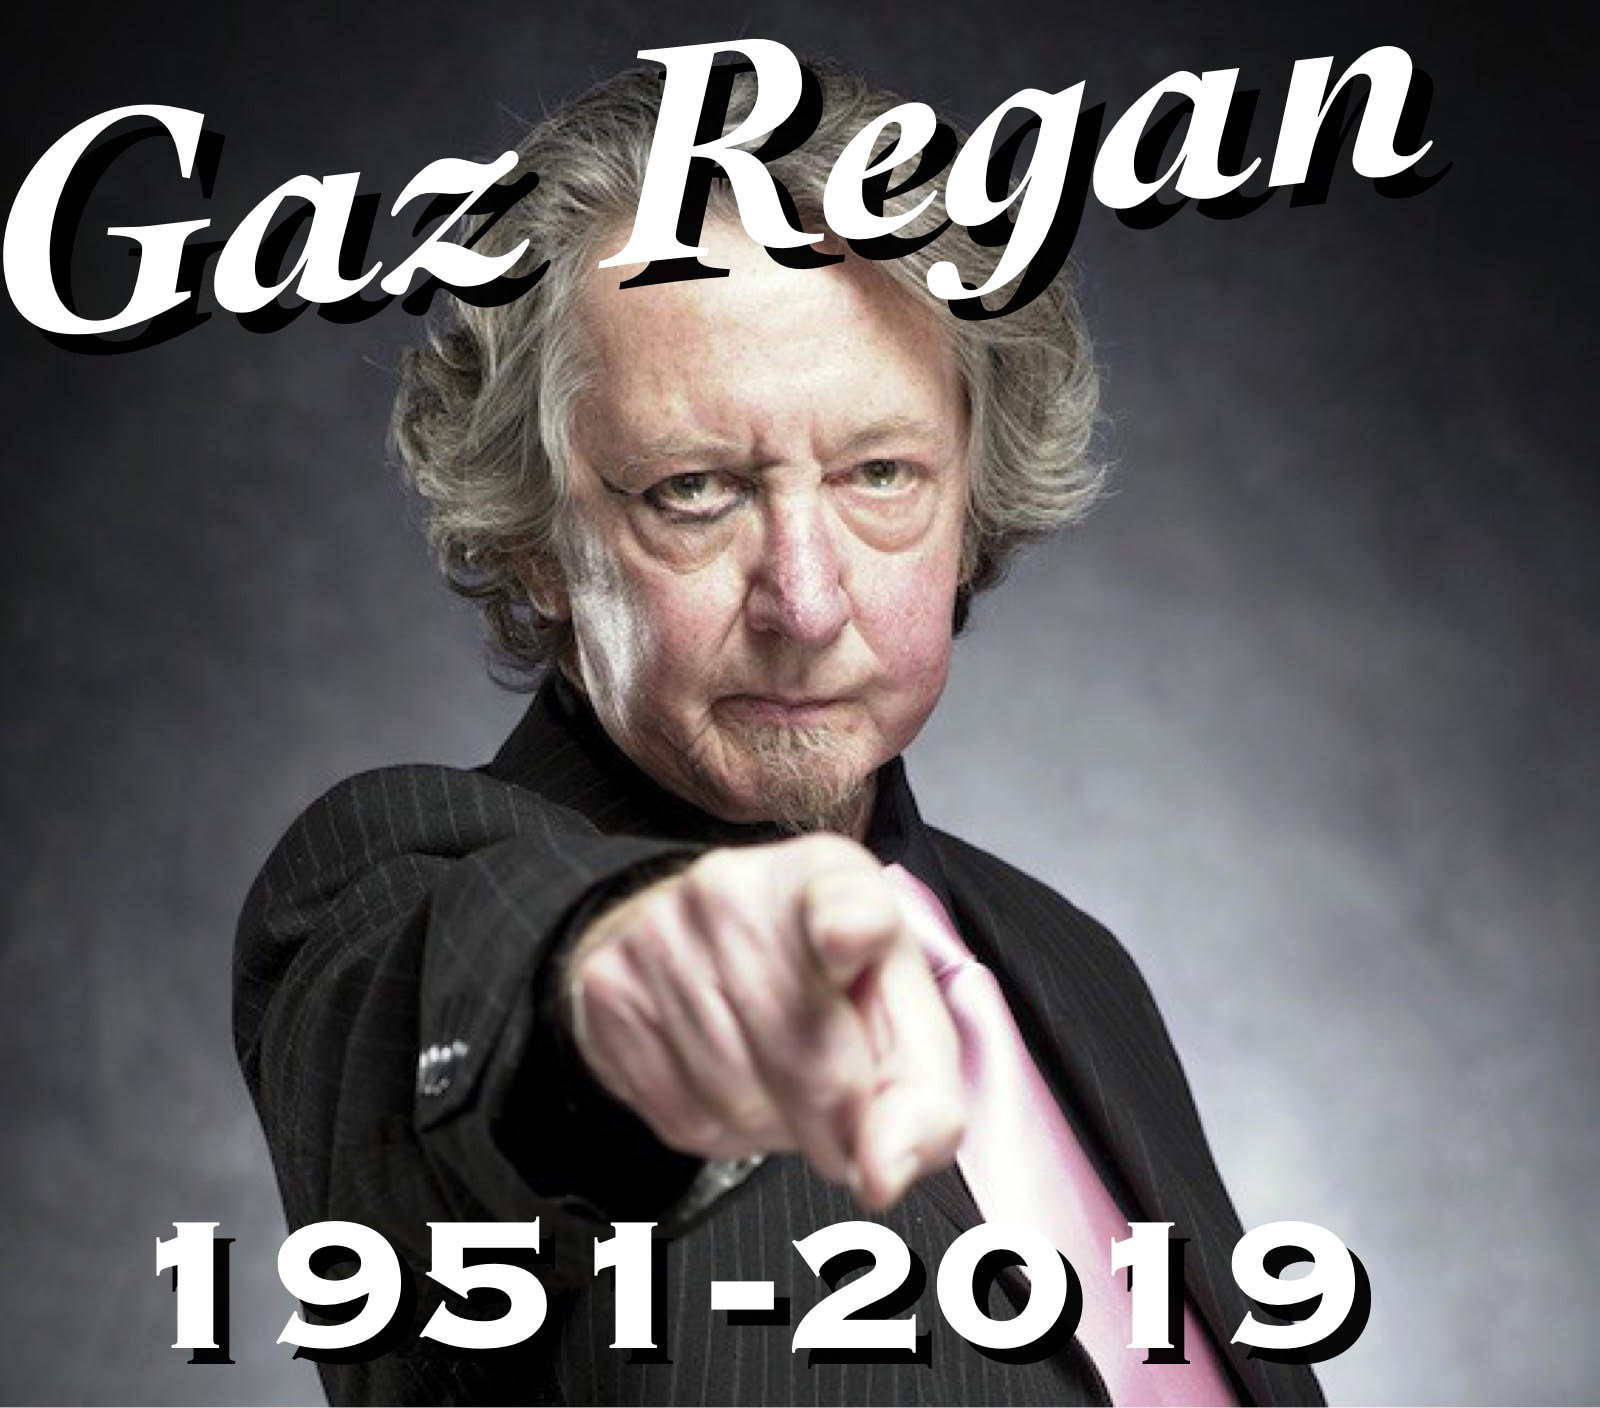 Gaz Regan dies